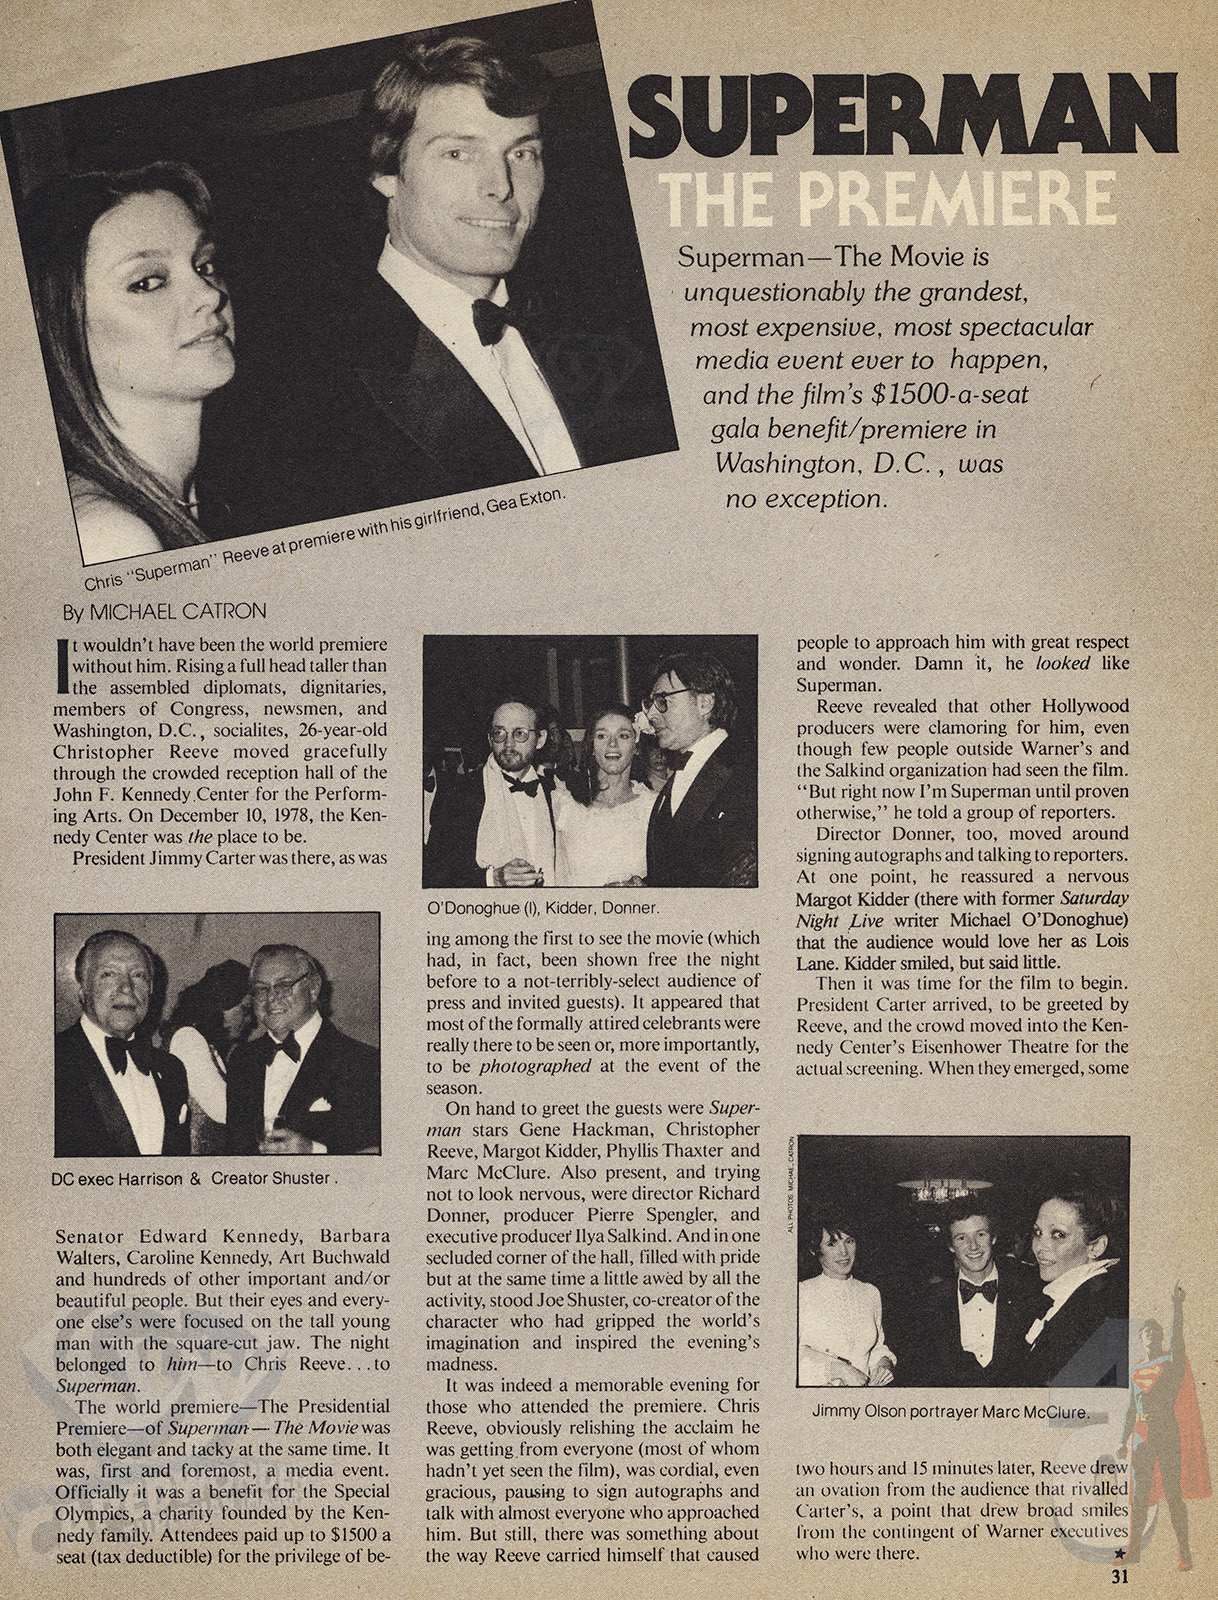 STM-Starlog-Washington-premiere-Dec-10-78-1